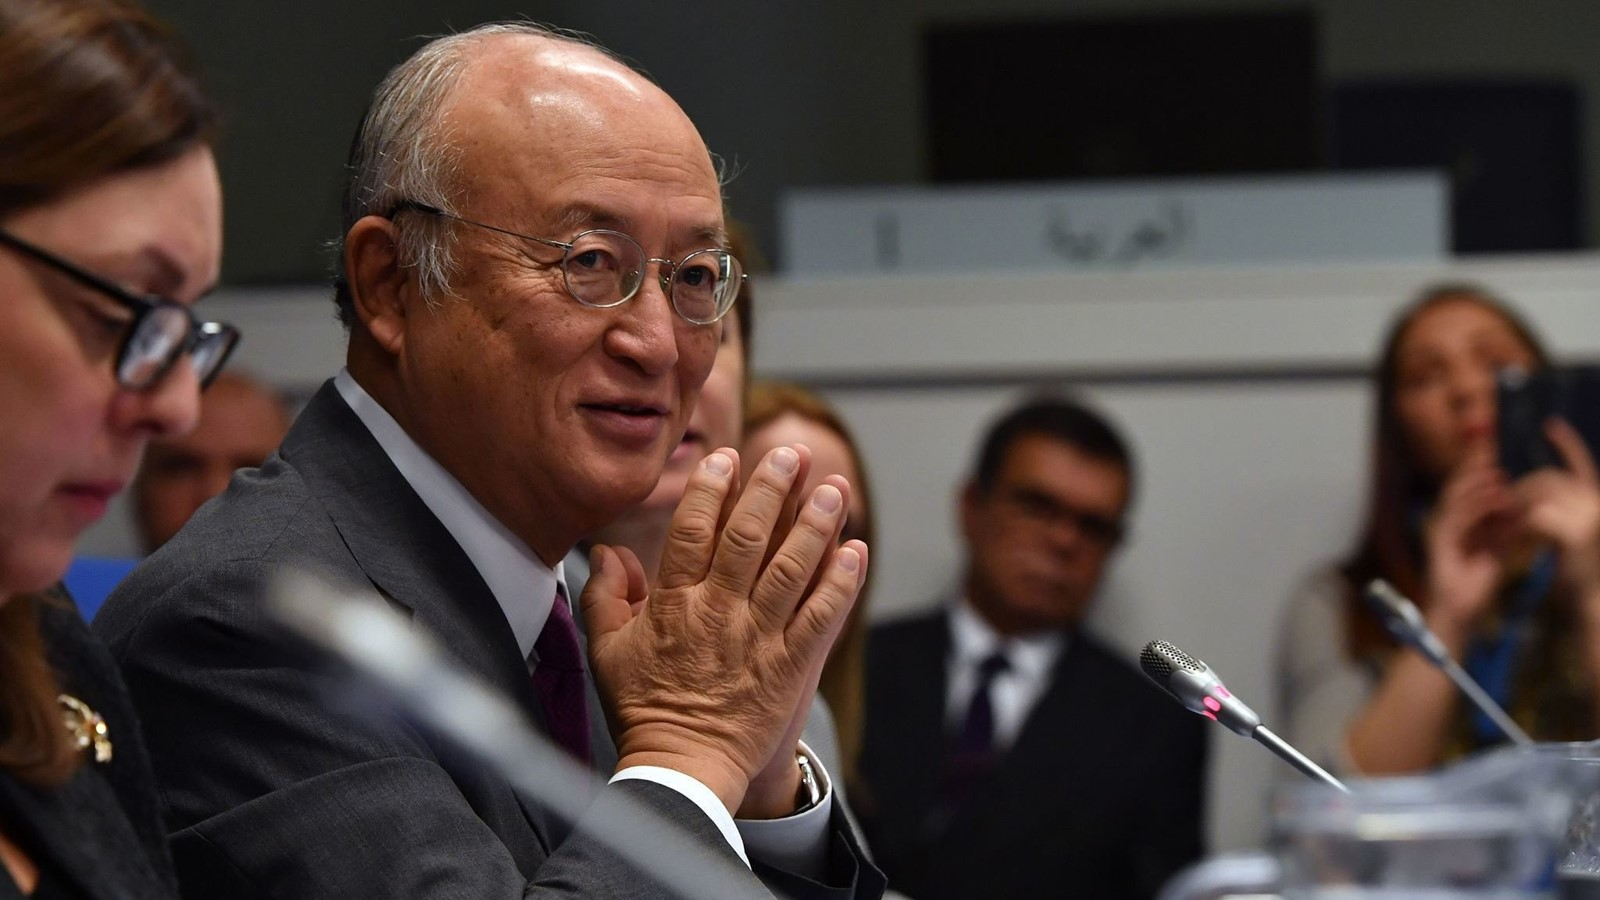 Yukiya Amano has led the IAEA since 2009. He says worries over weapons distract attention from constructive applications of nuclear energy. — Photograph: International Atomic Energy Agency.